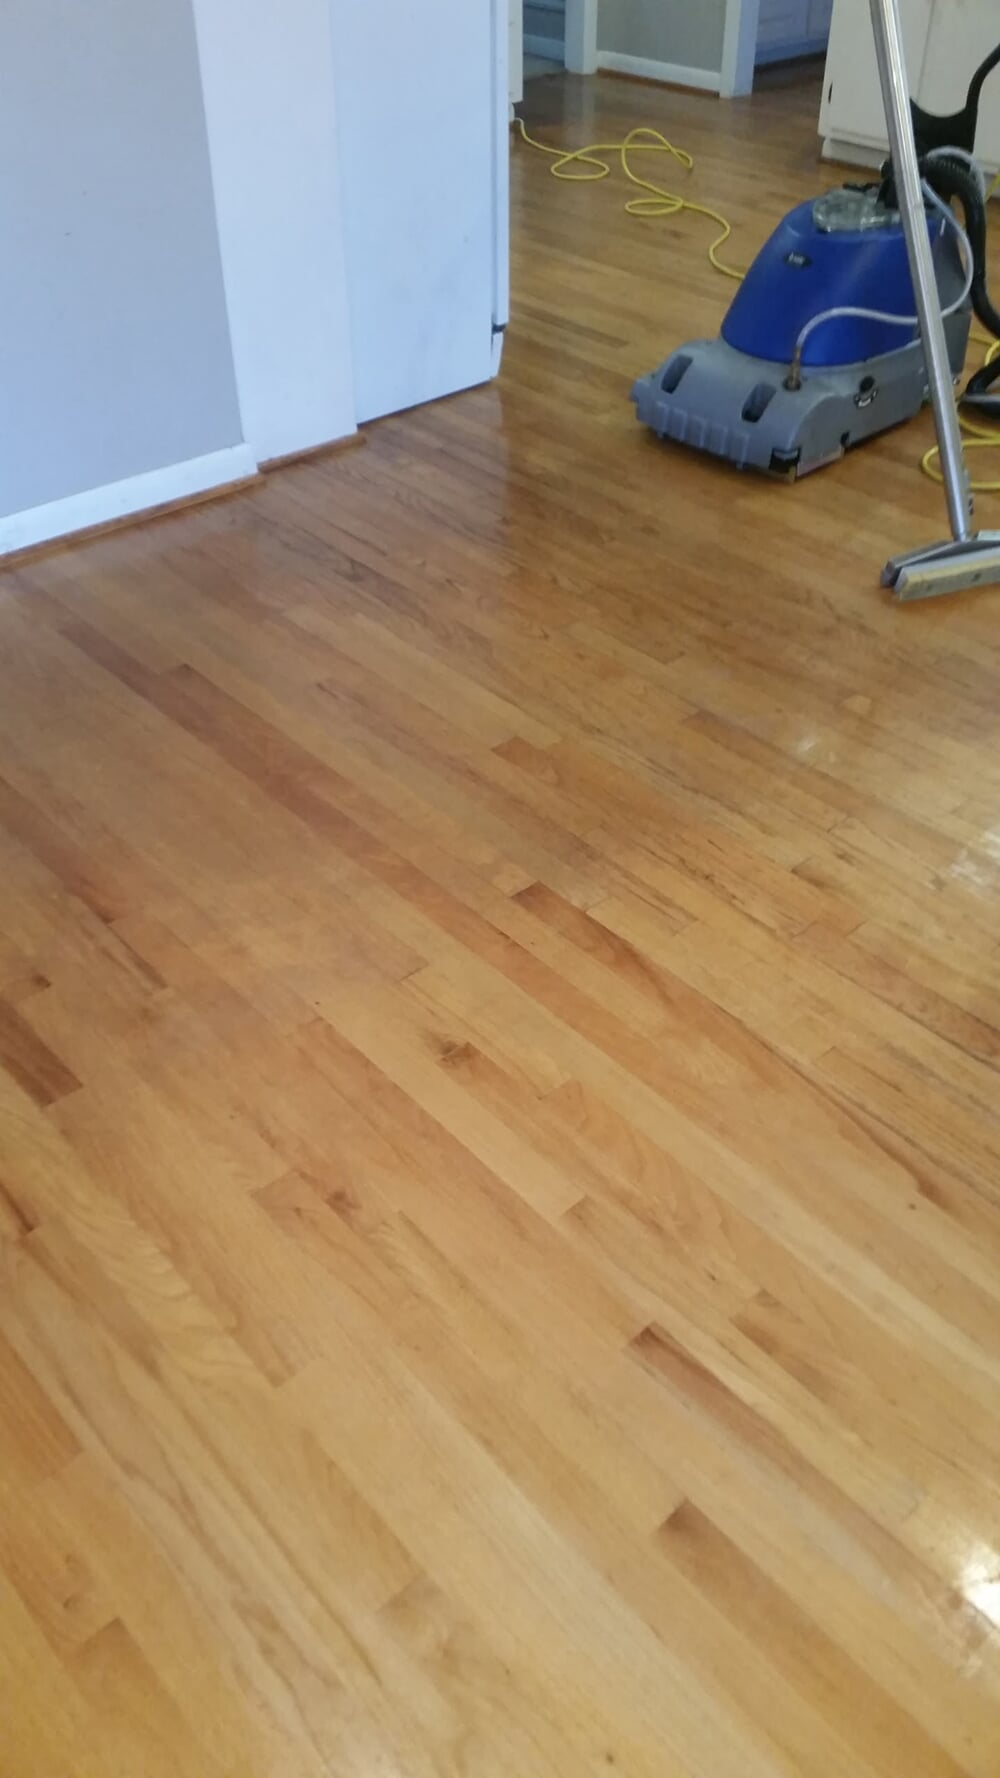 Hardwood floor cleaning in Asheville, NC from BPS Southeast